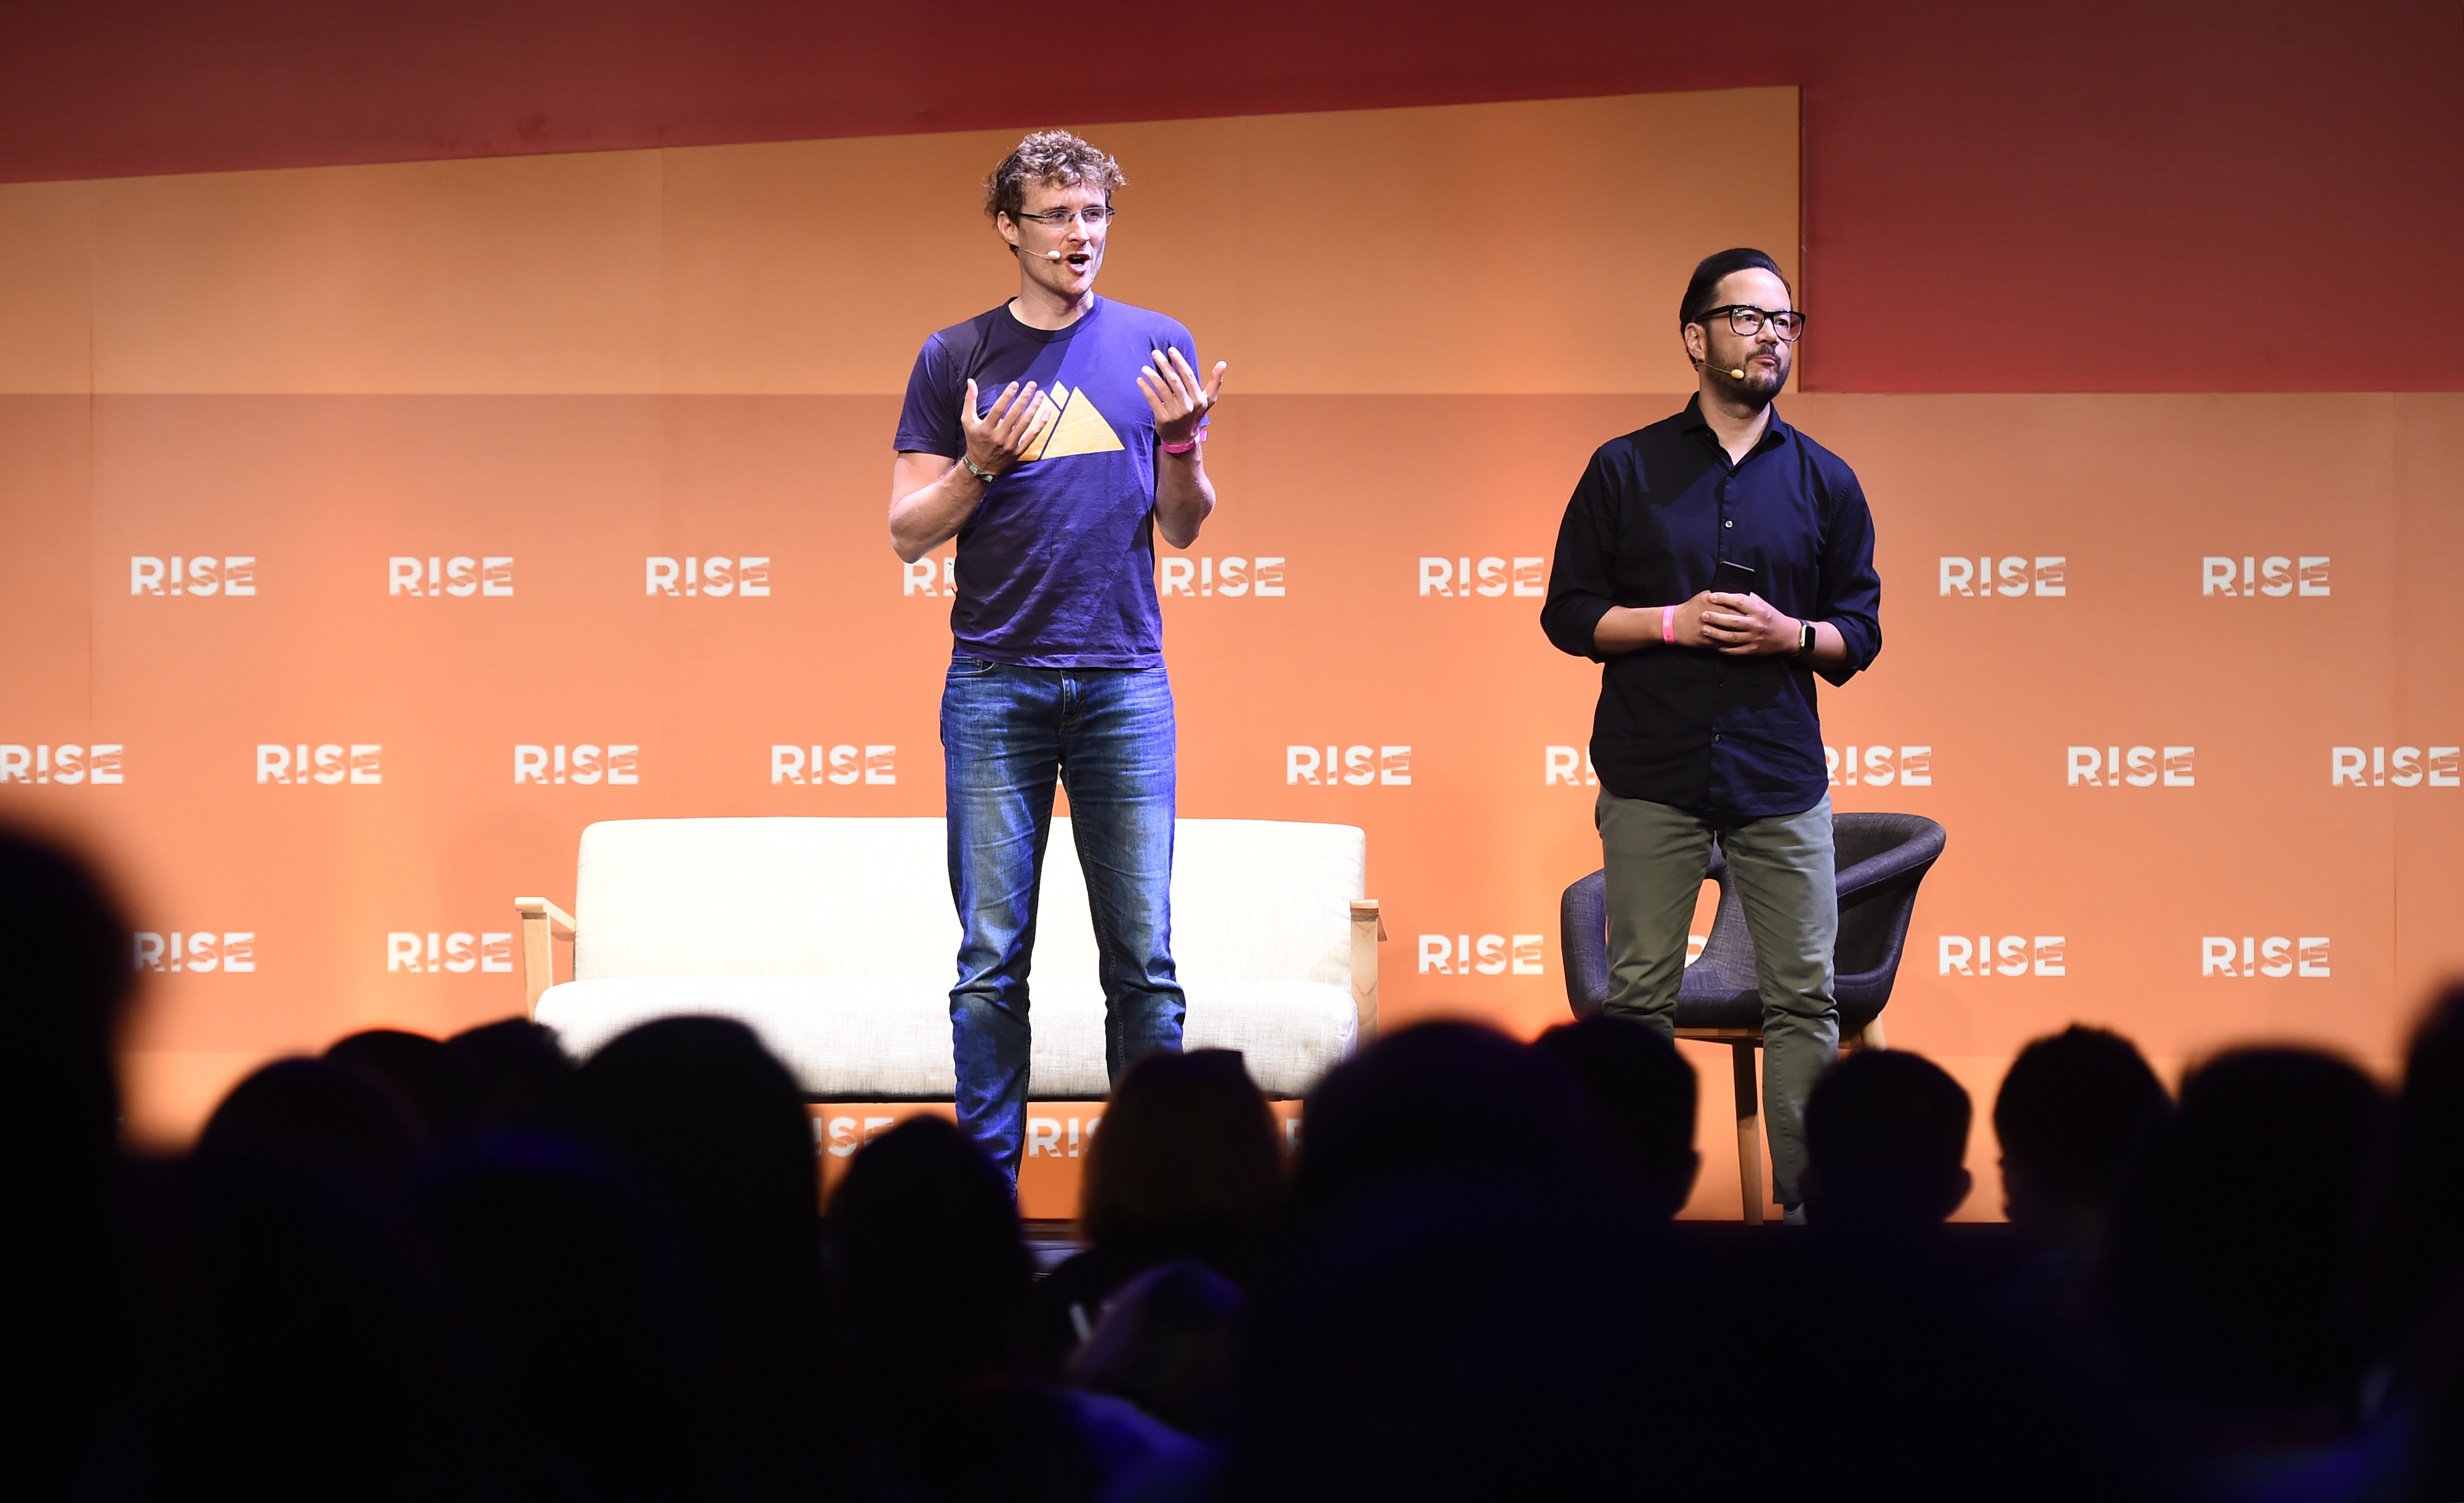 11 July 2017; ; Paddy Cosgrave, left, Co-Founder & CEO, RISE & Web Summit, and Casey Lau, Founder of StartupsHK on stage during the opening day of RISE 2017 in Hong Kong. Photo by Stephen McCarthy / RISE / Sportsfile